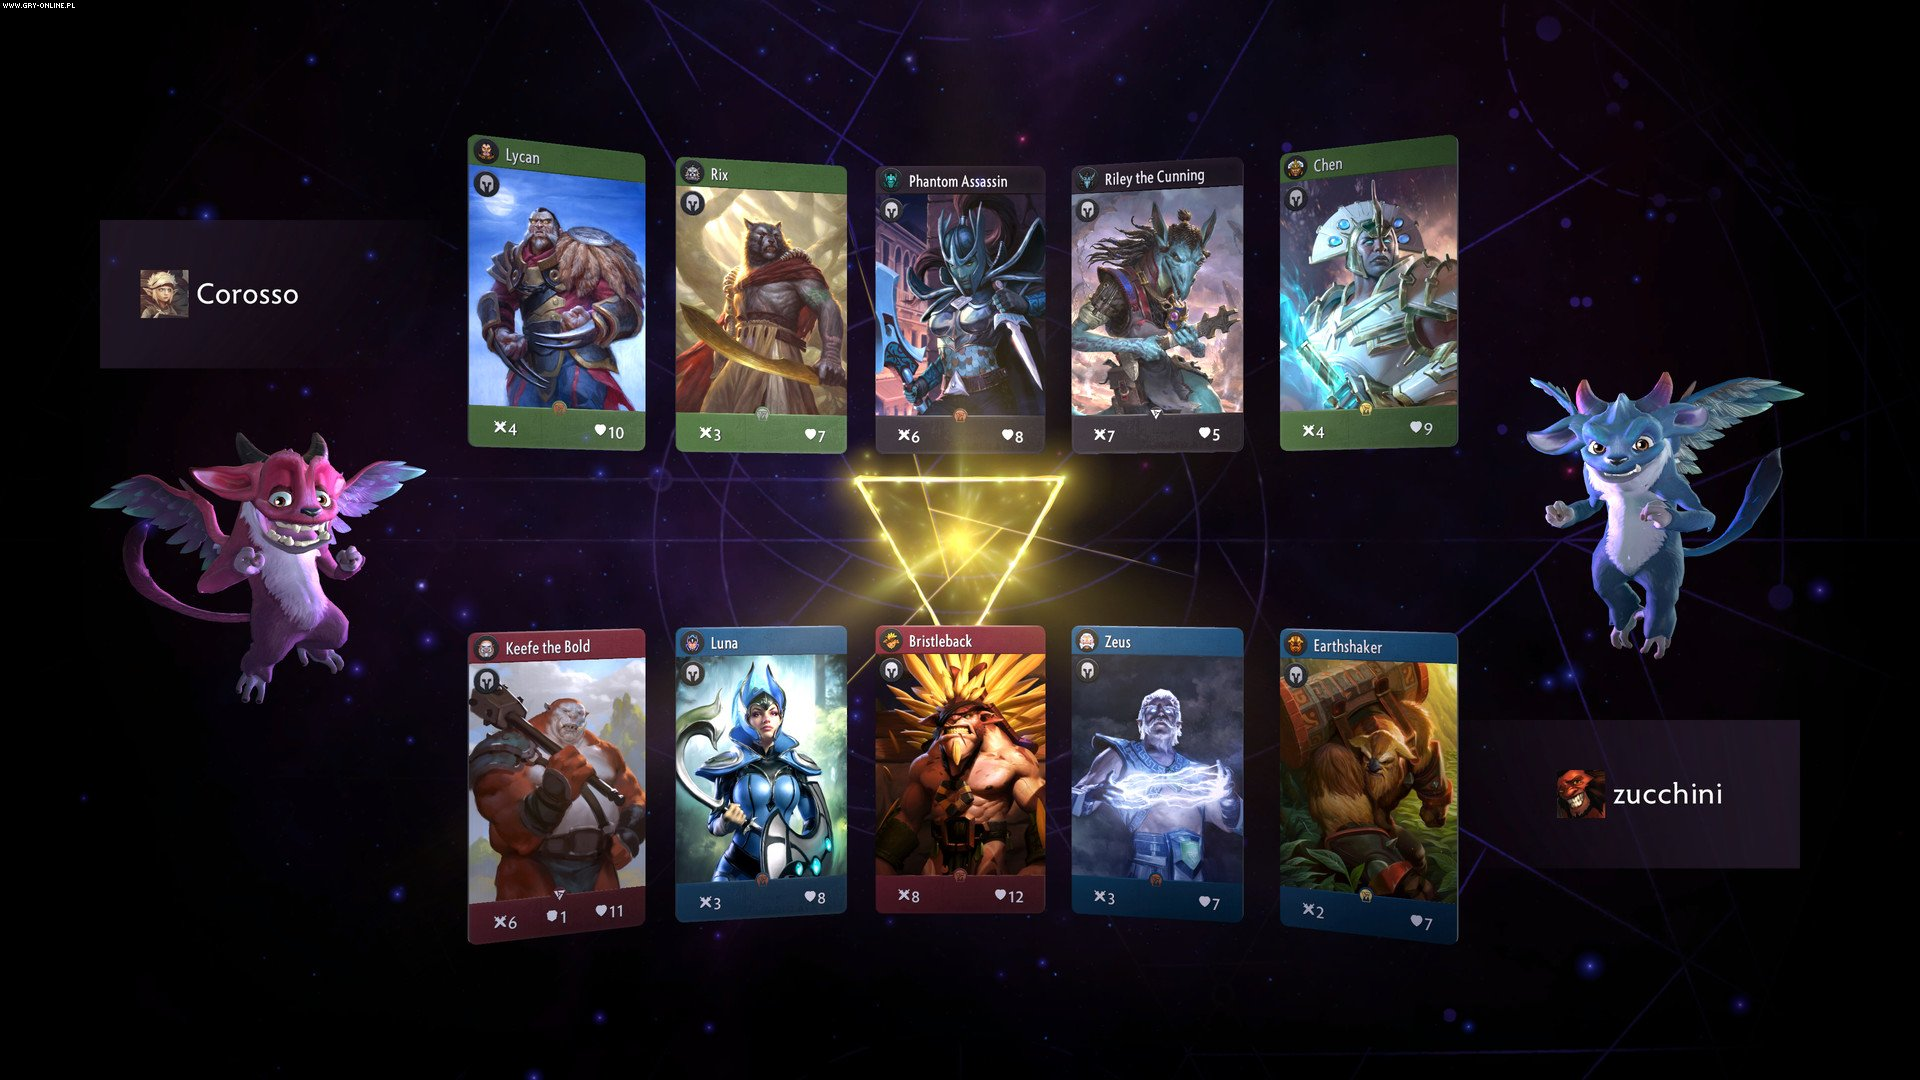 Artifact PC, AND, iOS Gry Screen 2/9, Valve Corporation